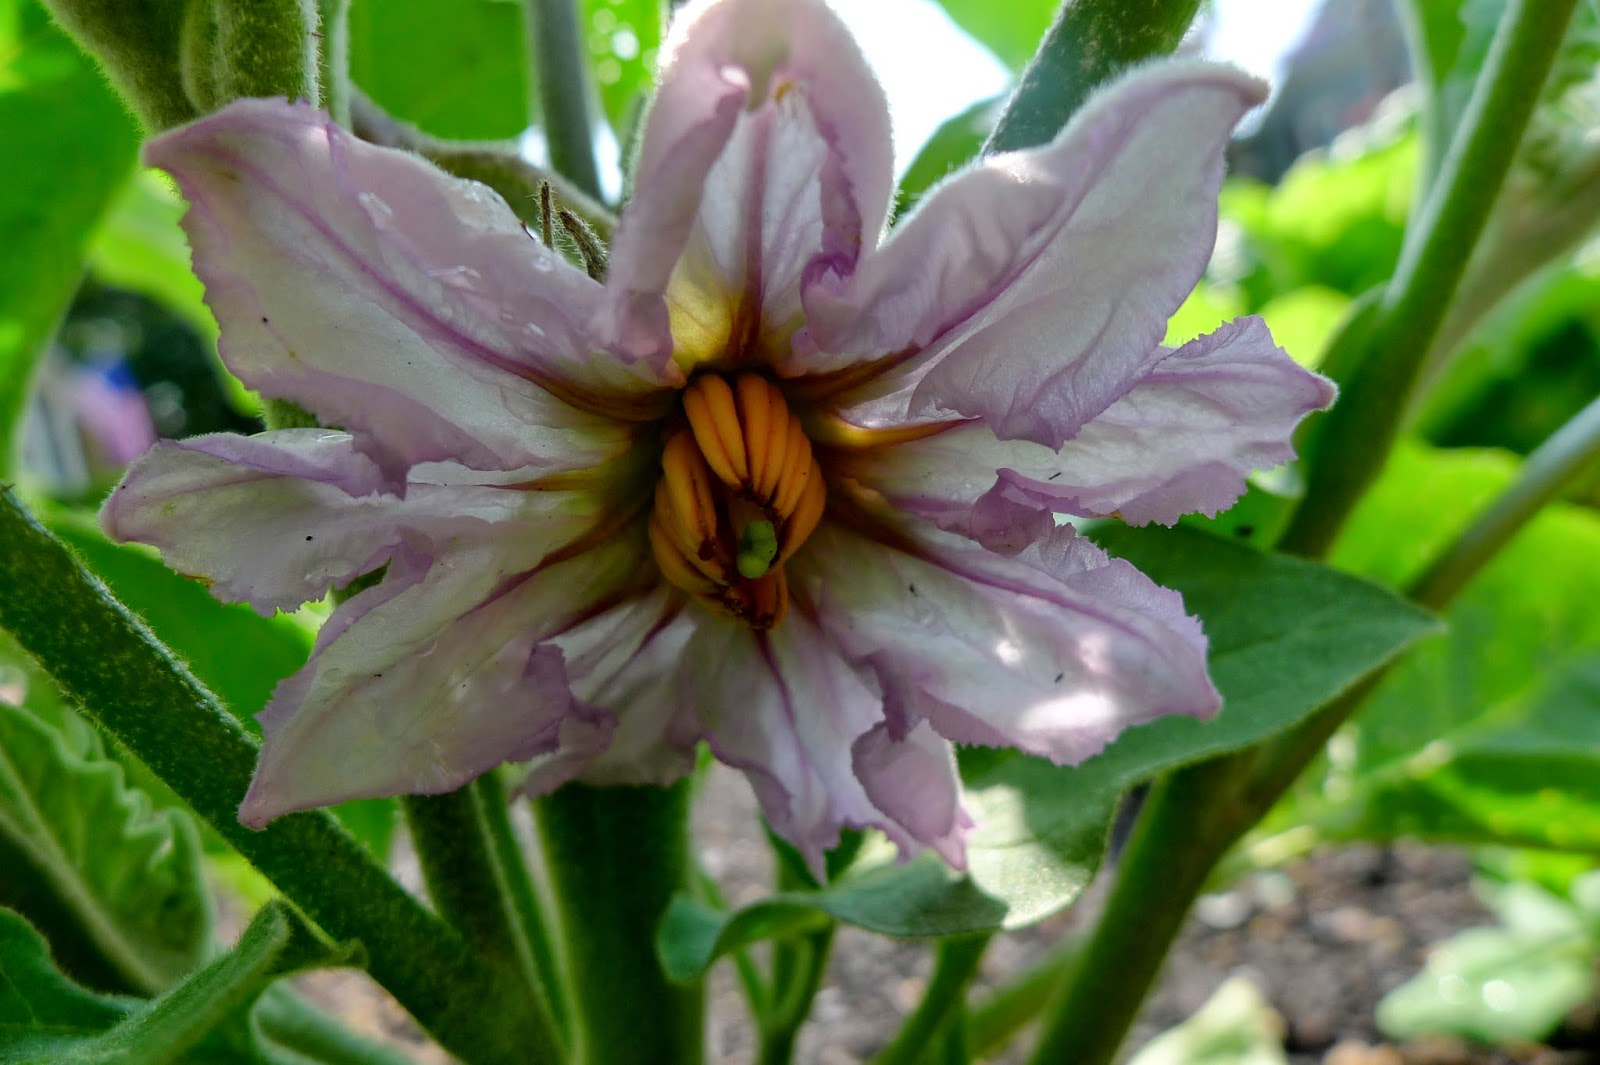 Black Beauty eggplant flower, urban gardening